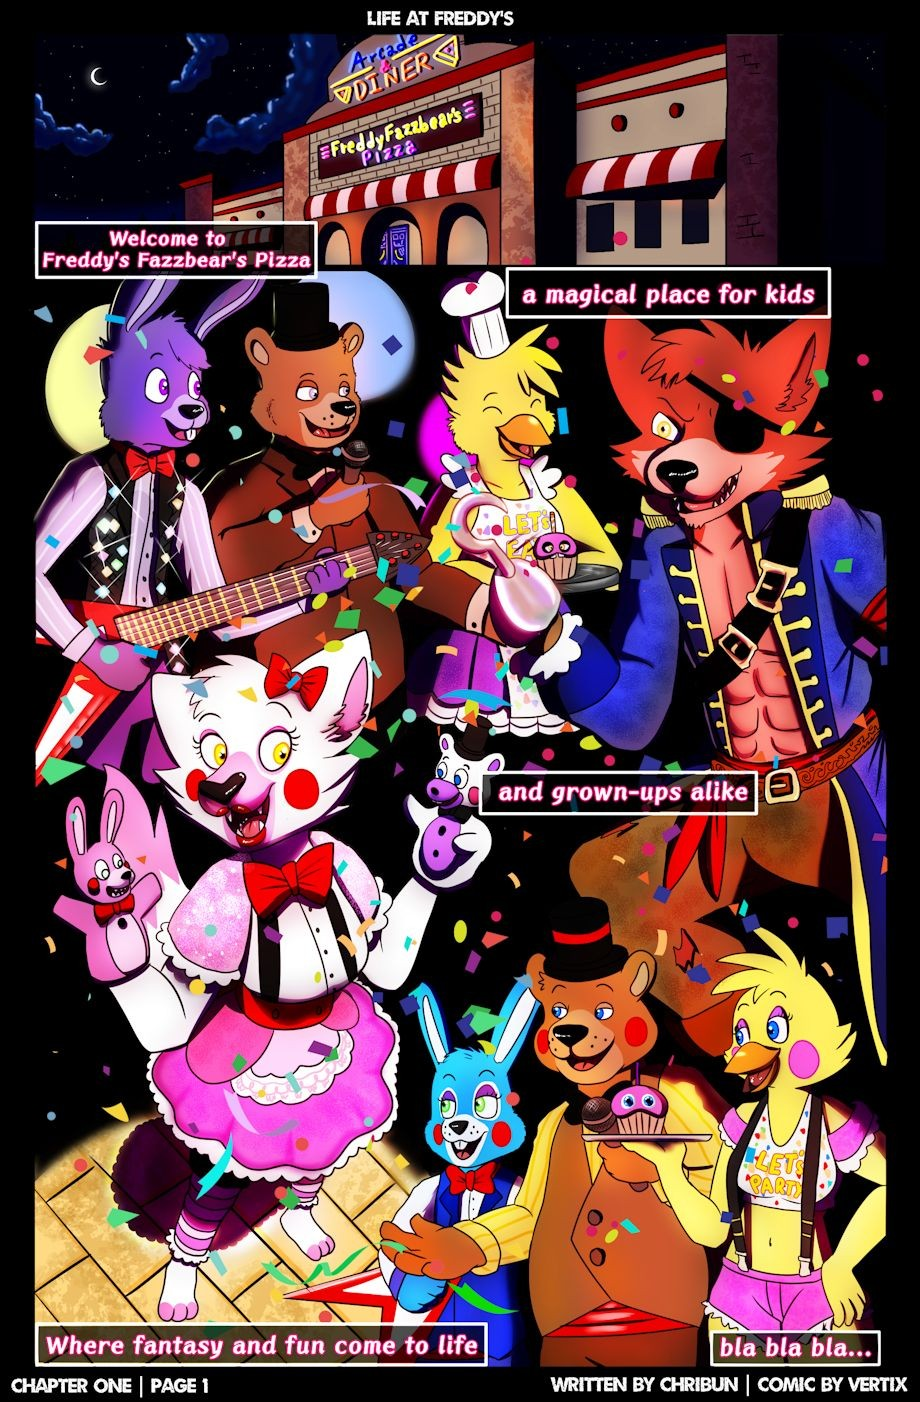 Five Nights At Freddys Life At Freddys Chapter one 06 4